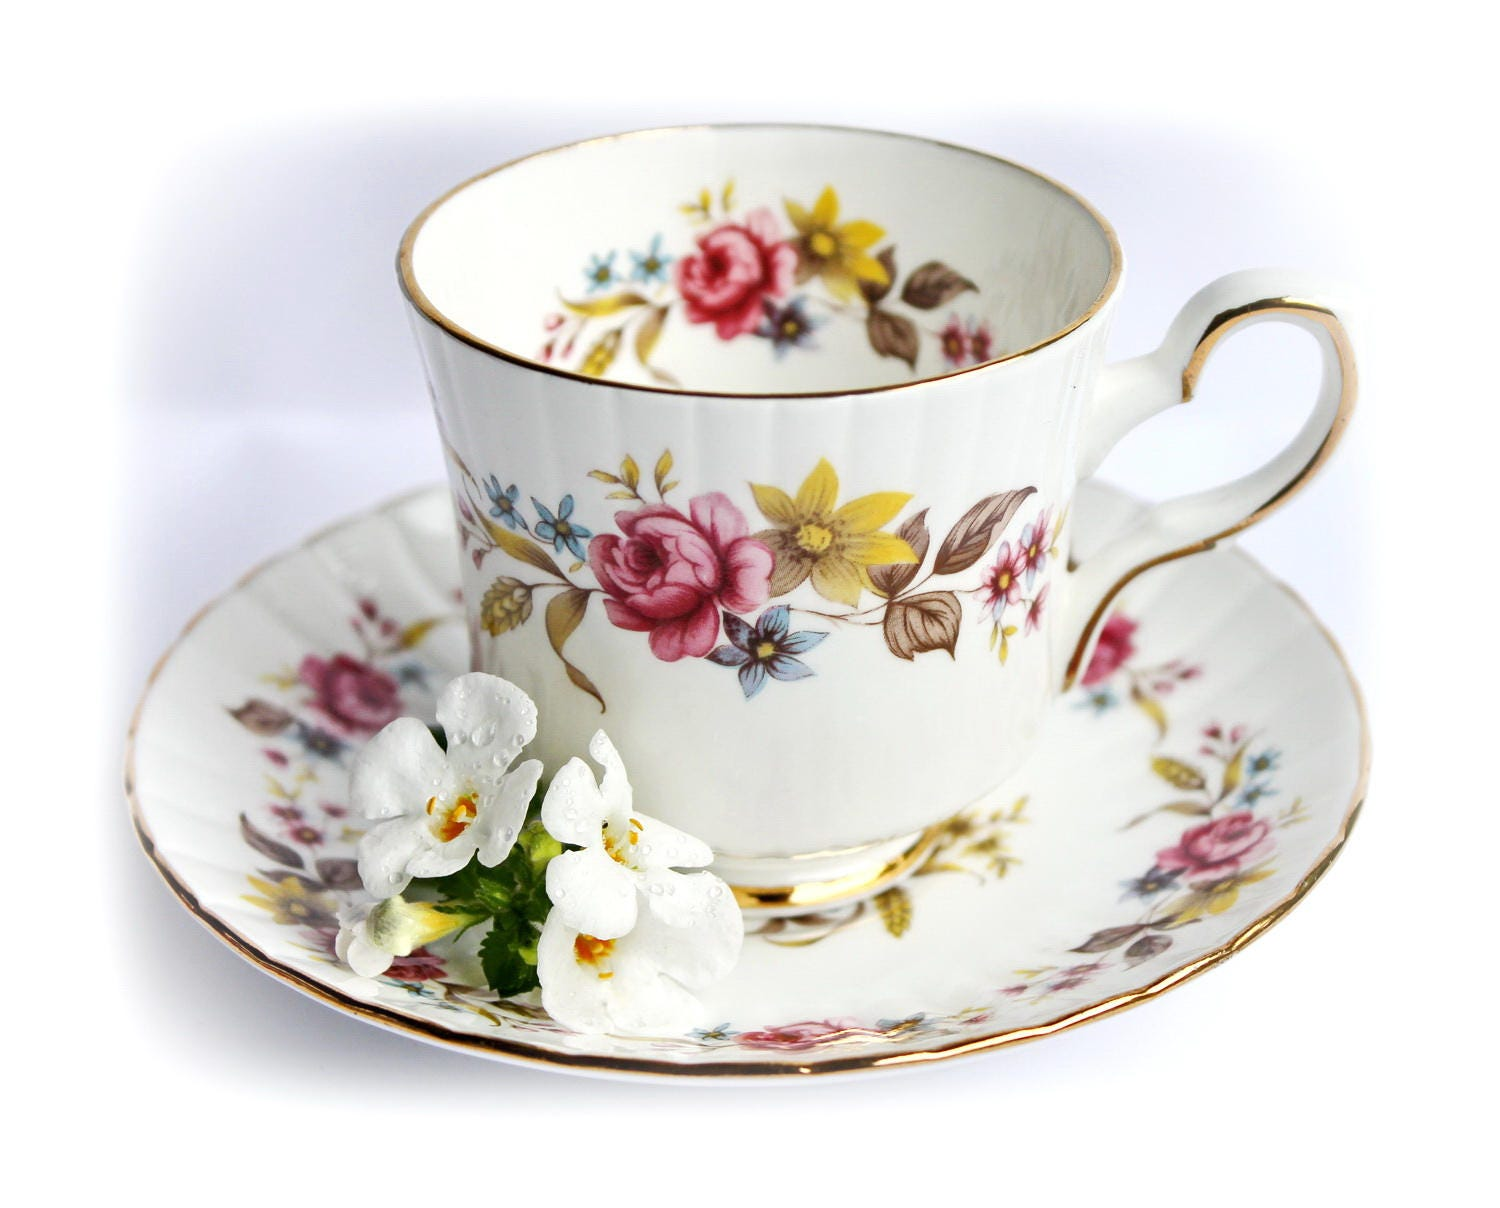 vintage rosen teetasse englisch china blumen tee tasse. Black Bedroom Furniture Sets. Home Design Ideas